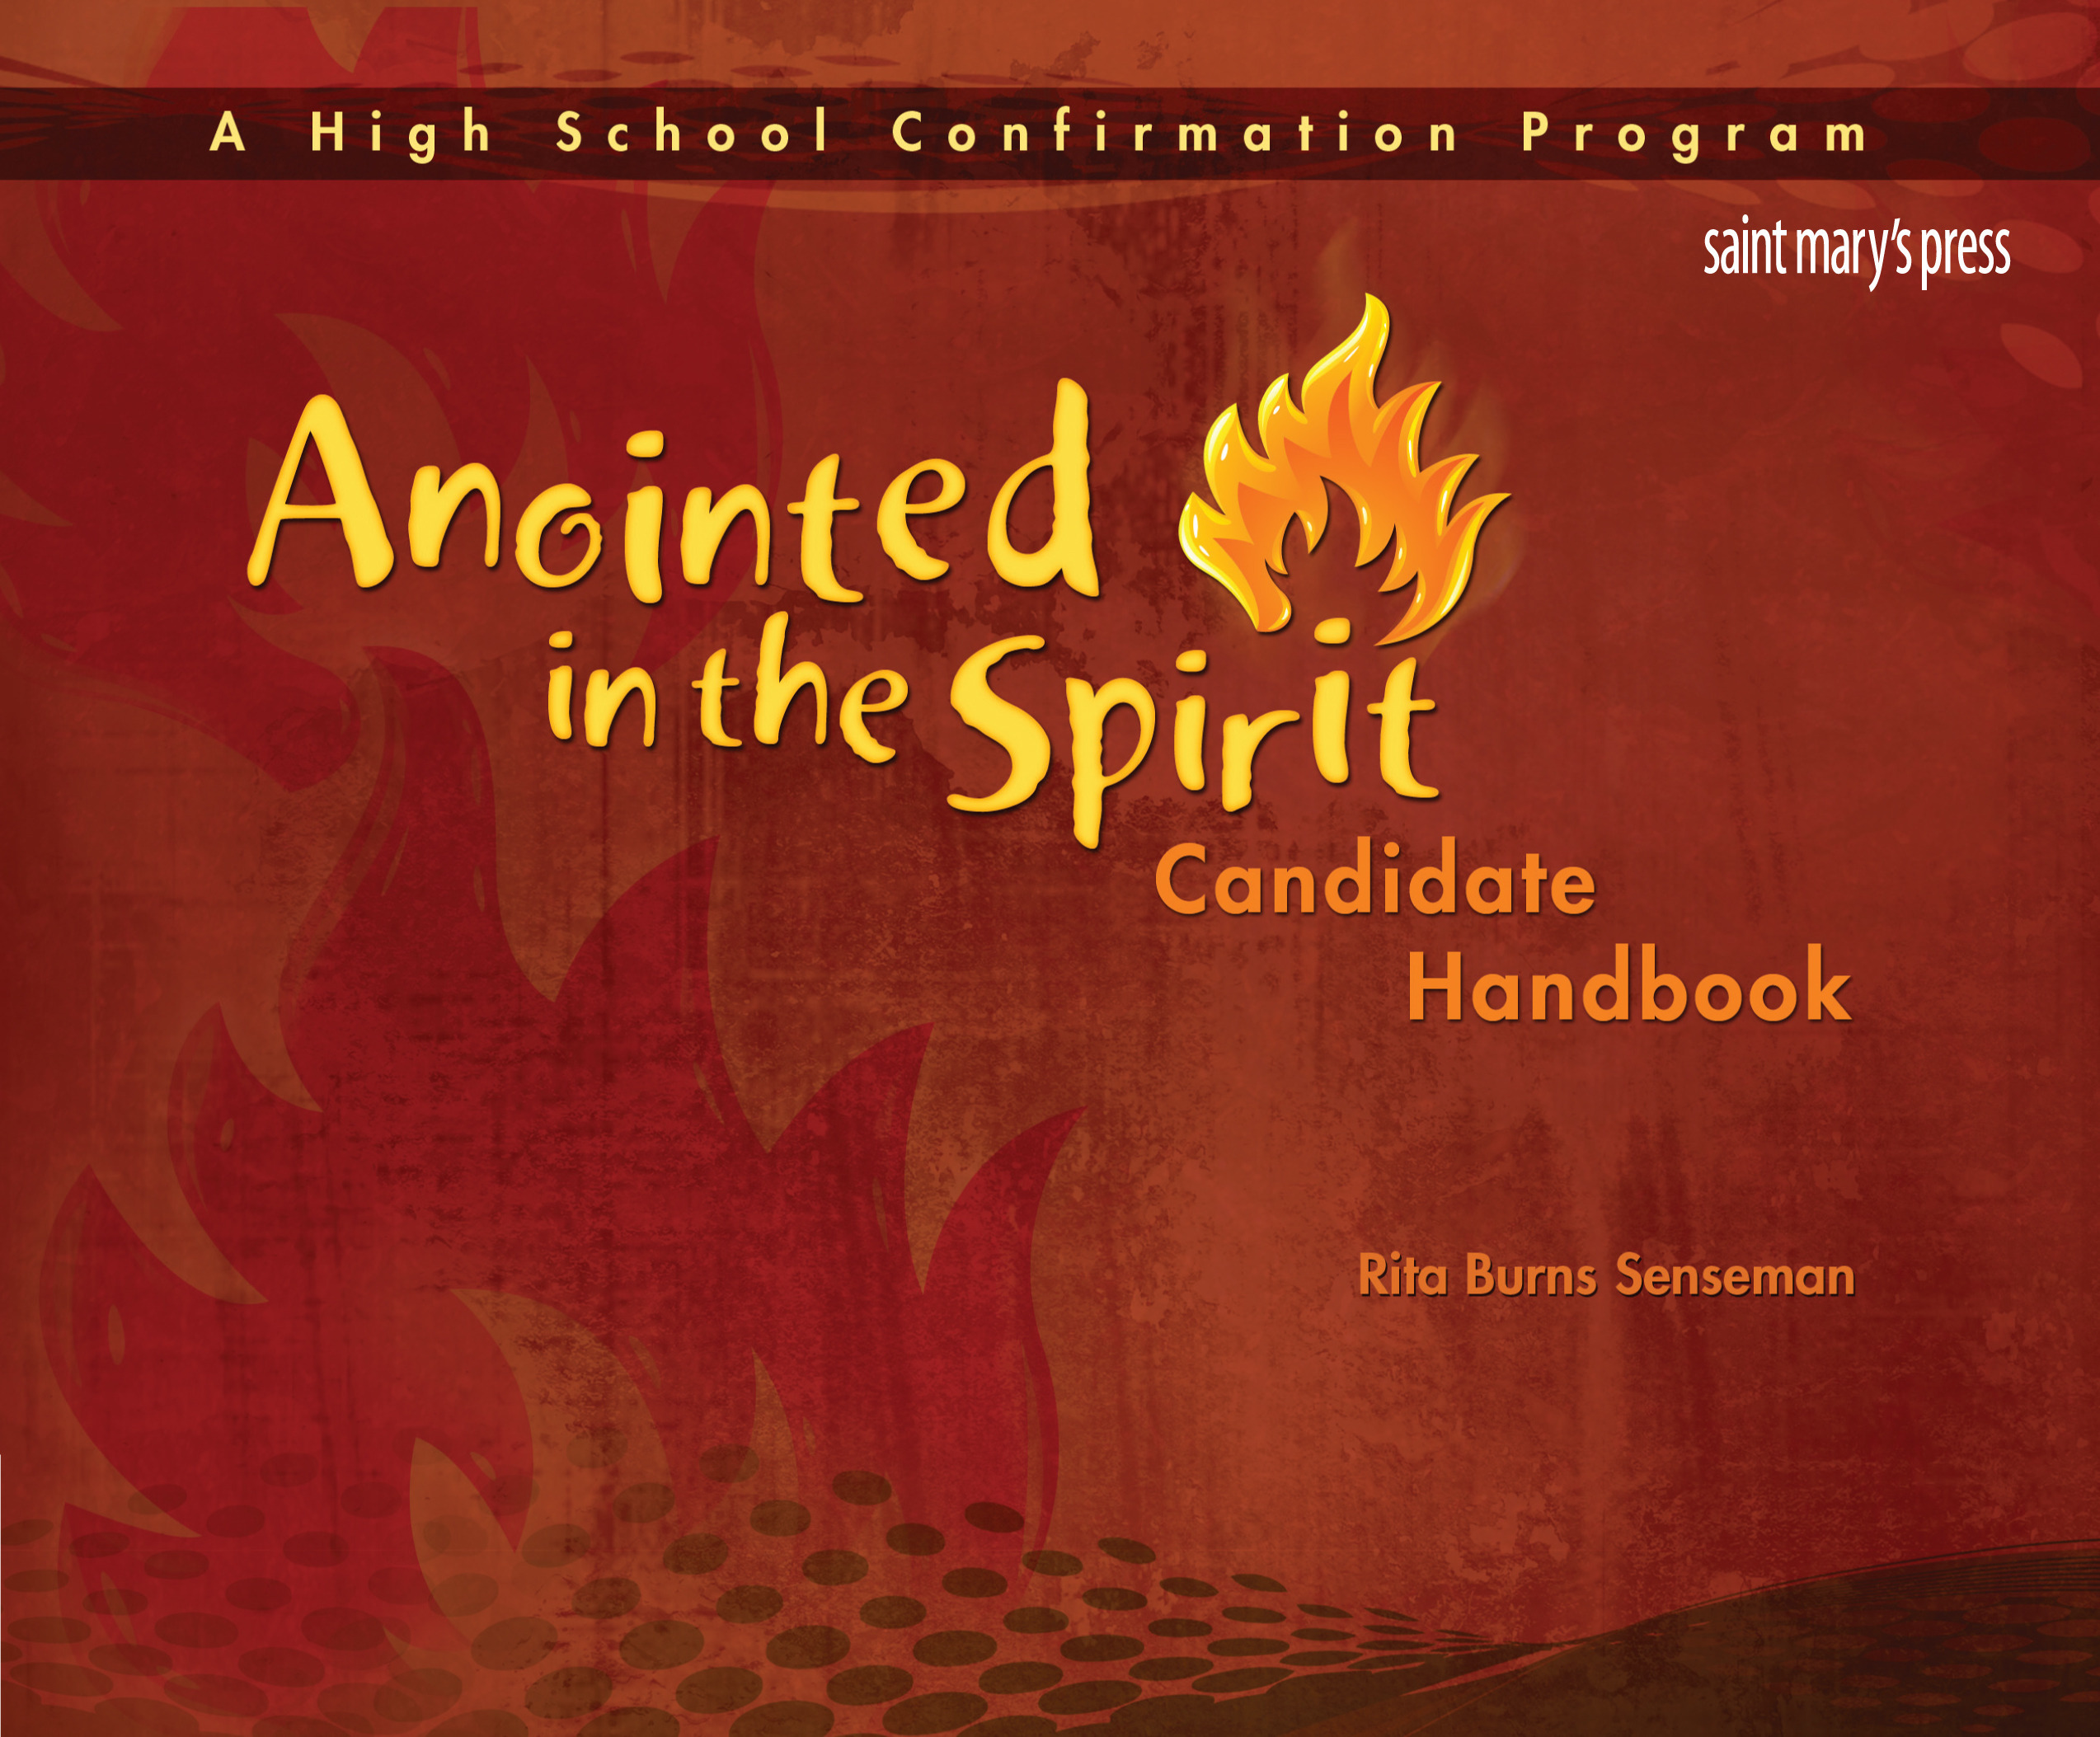 Anointed in the Spirit Candidate Handbook: A High School Confirmation Program